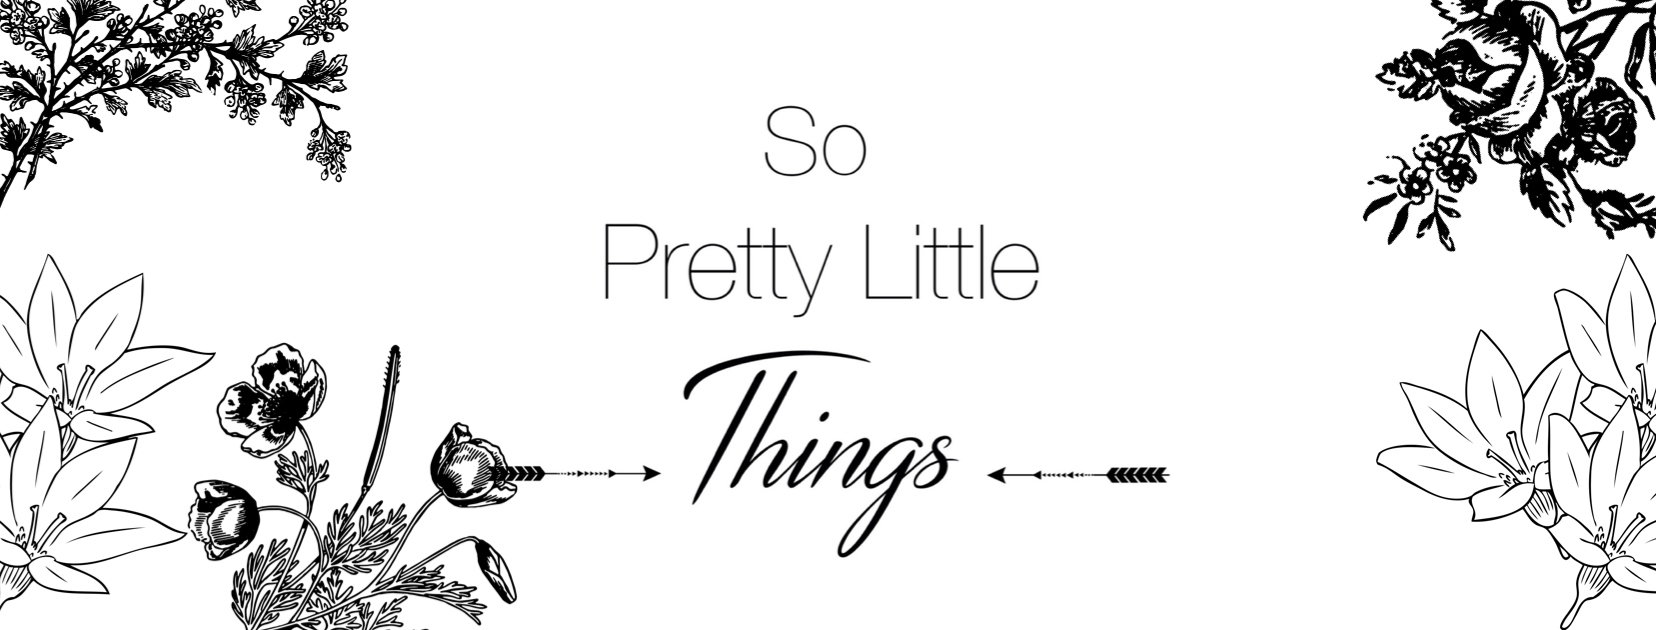 So Pretty Little Things